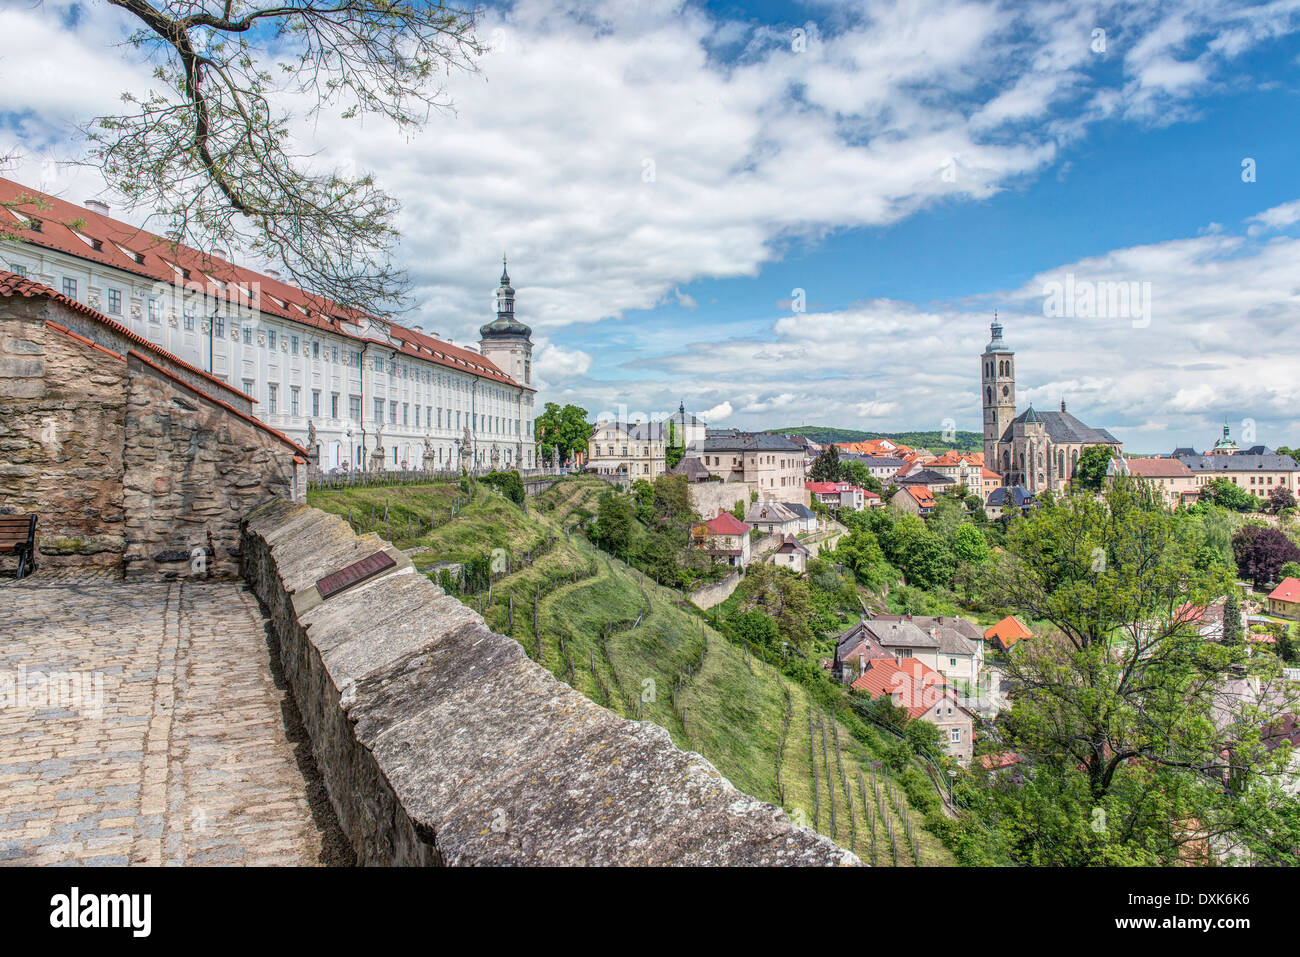 View of Kutna Hora, Central Bohemia, Czech Republic - Stock Image